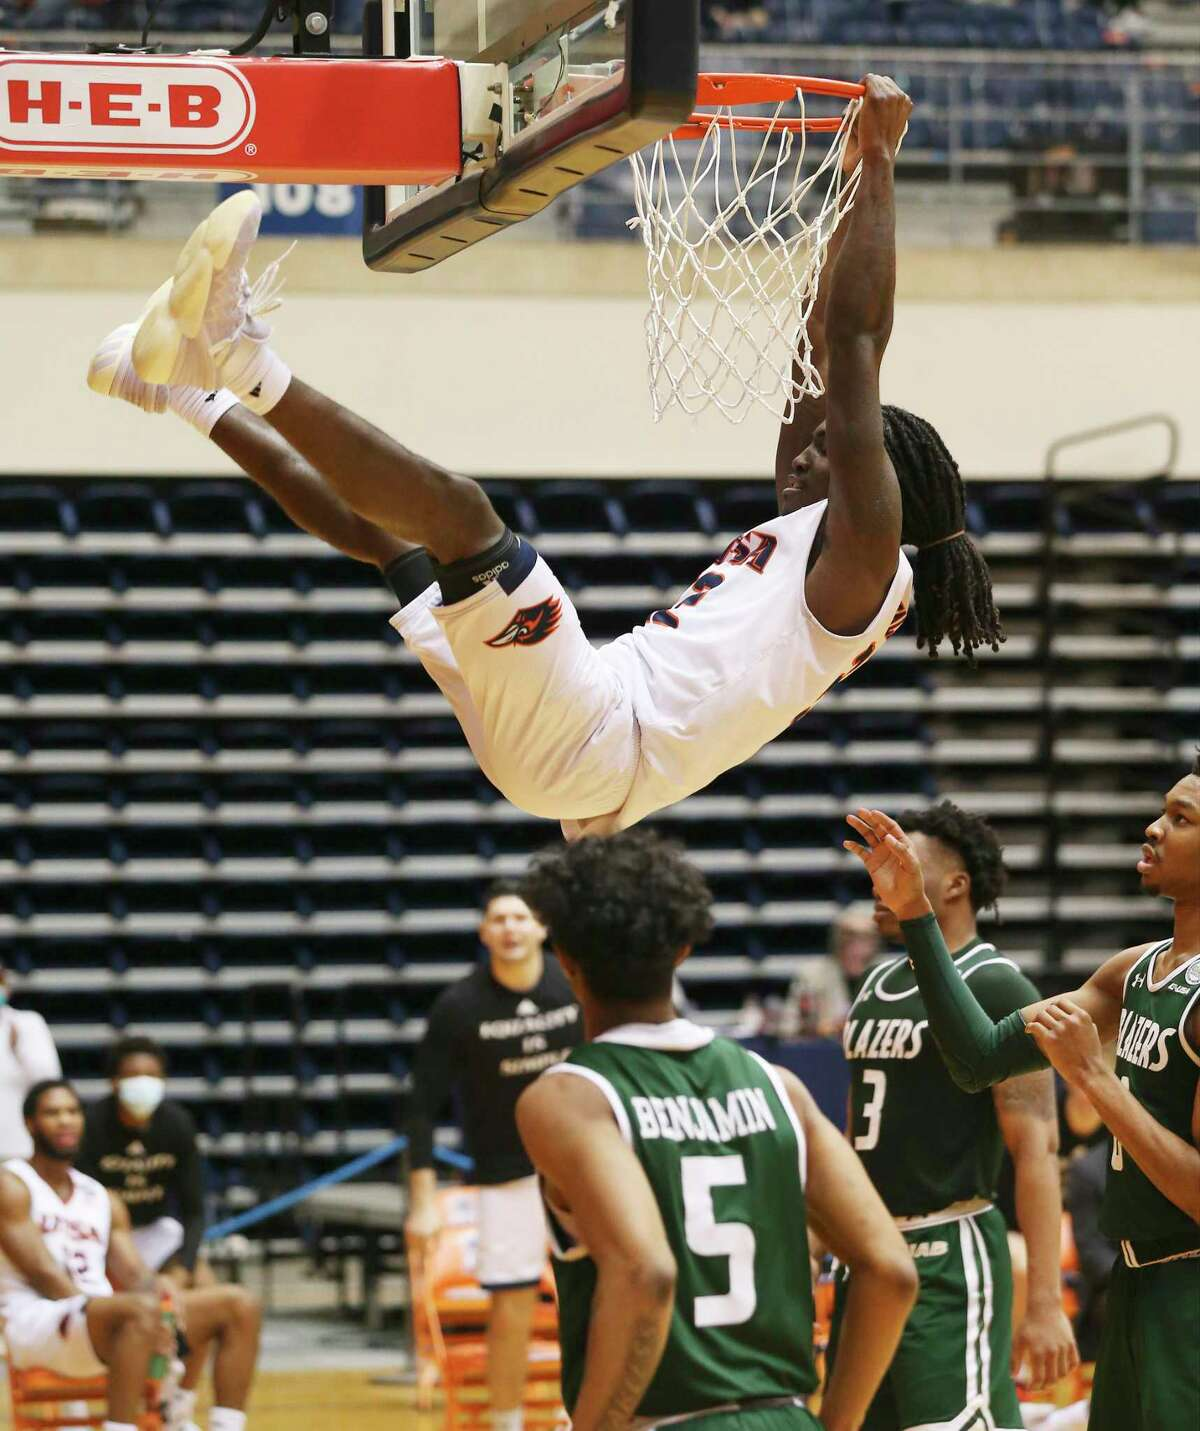 UTSA's Keaton Wallace follows through on a dunk against the University of Alabama Birmingham during men's basketball at the Convocation Center on Friday, Feb. 26, 2021. UTSA goes down, 57-64, to UAB and will play again on Saturday.